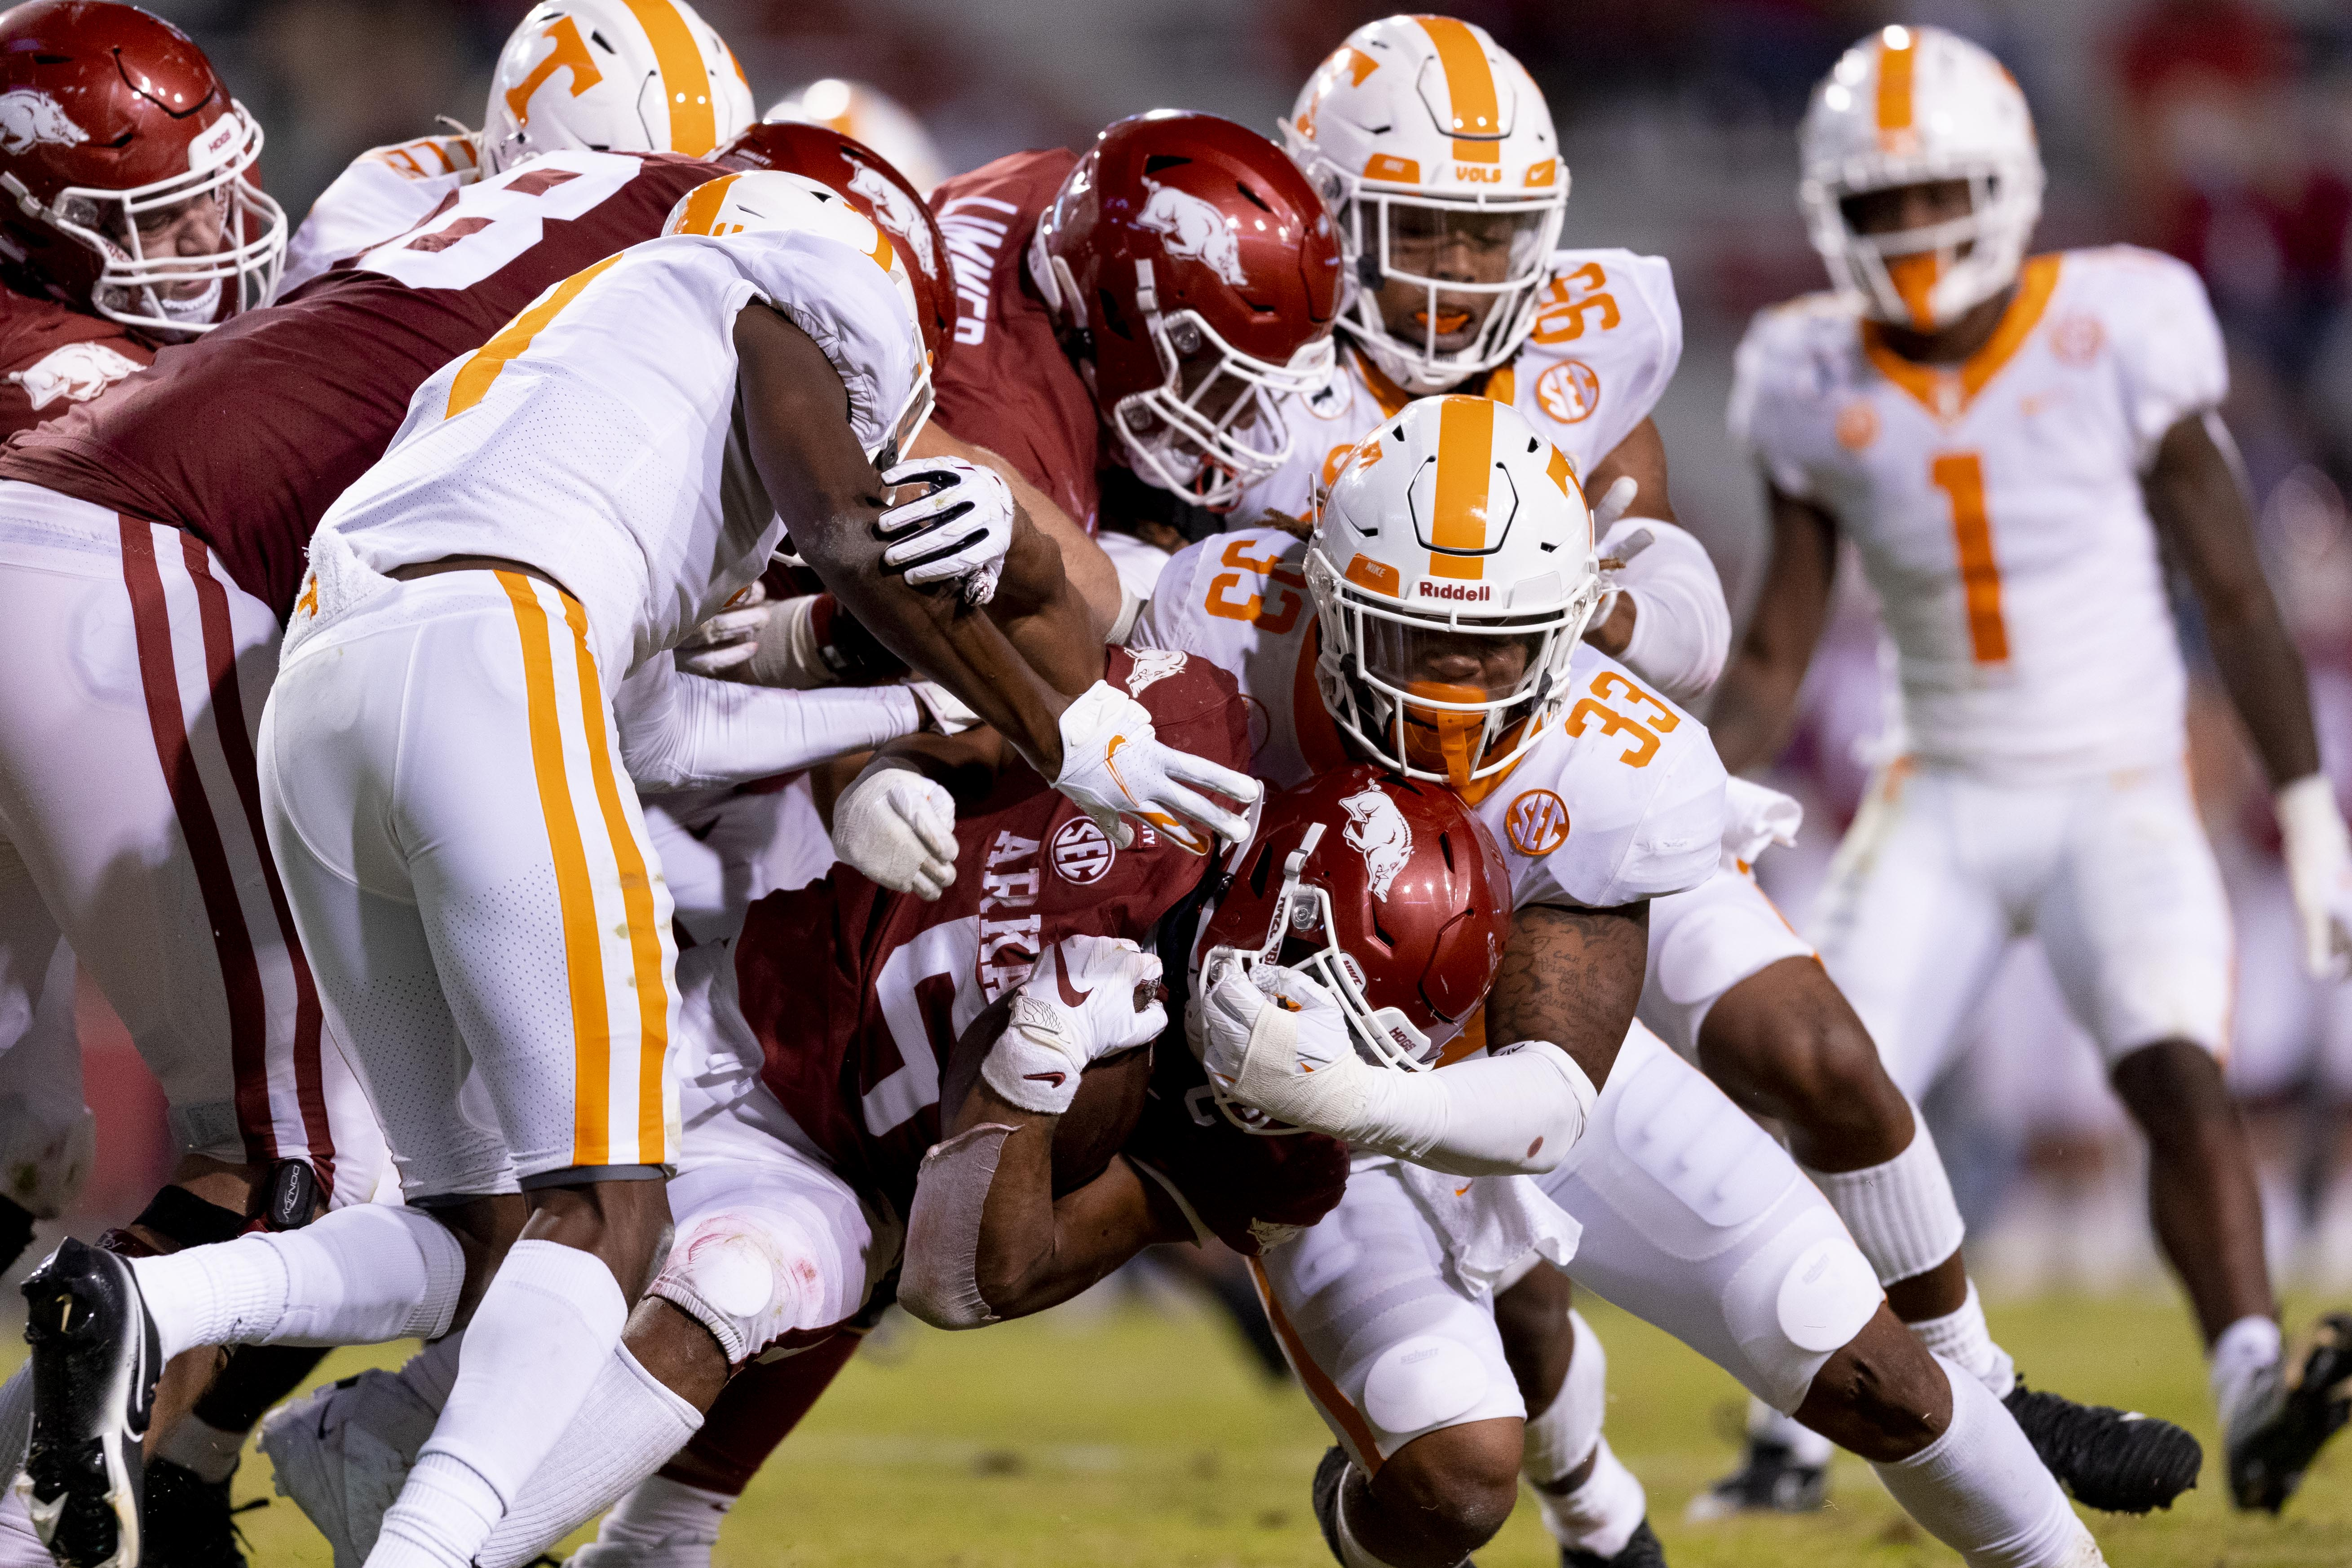 PHOTO GALLERY: Tennessee at Arkansas Game Photos